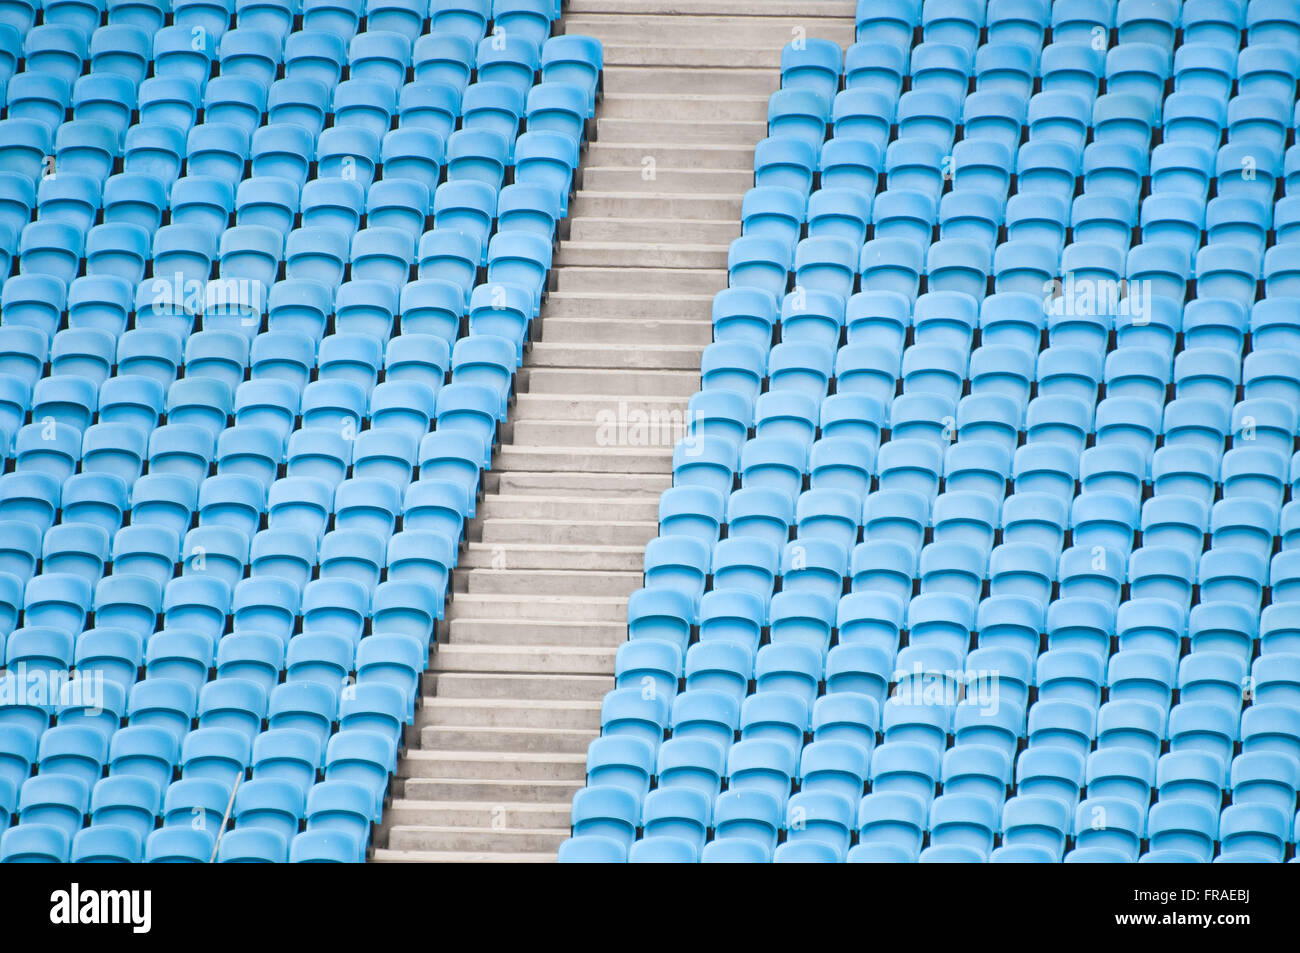 Detail of blue chairs in the football stadium bleachers - Stock Image